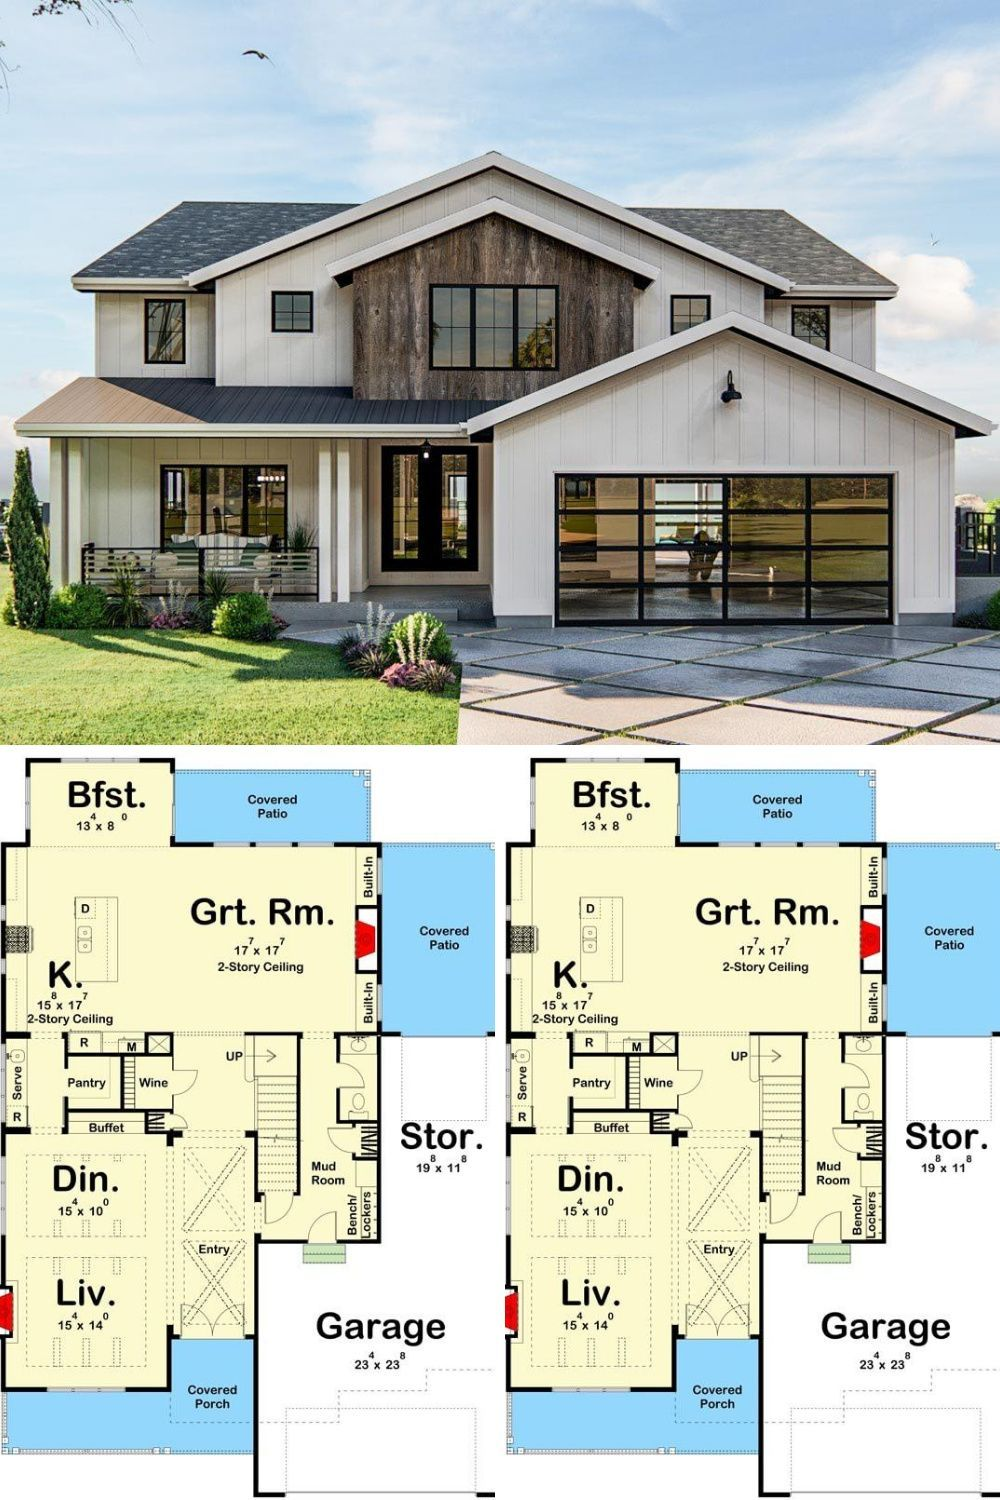 Two Story 3 Bedroom Modern Home with Exposed Beam Entryway Floor Plan